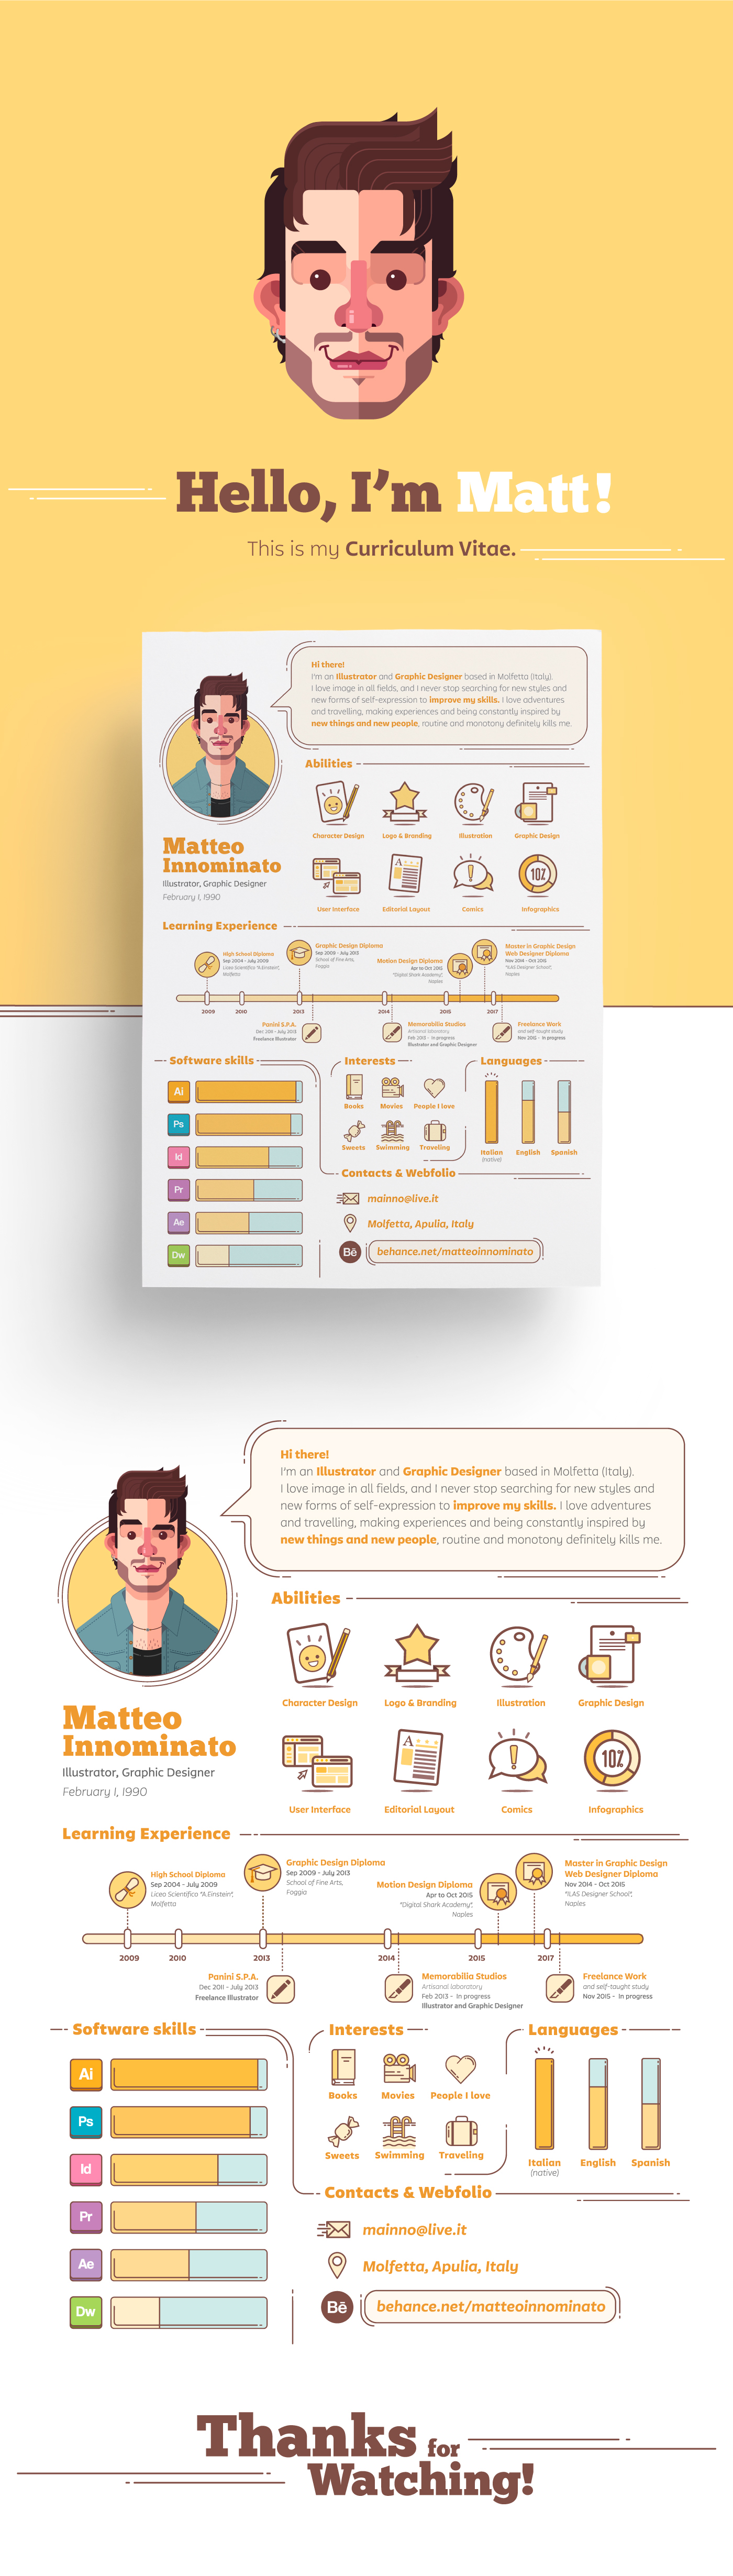 Resume Curriculum Vitae personal vector portrait Self Promotion flat personal project Personal Identity visual identity yellow Work